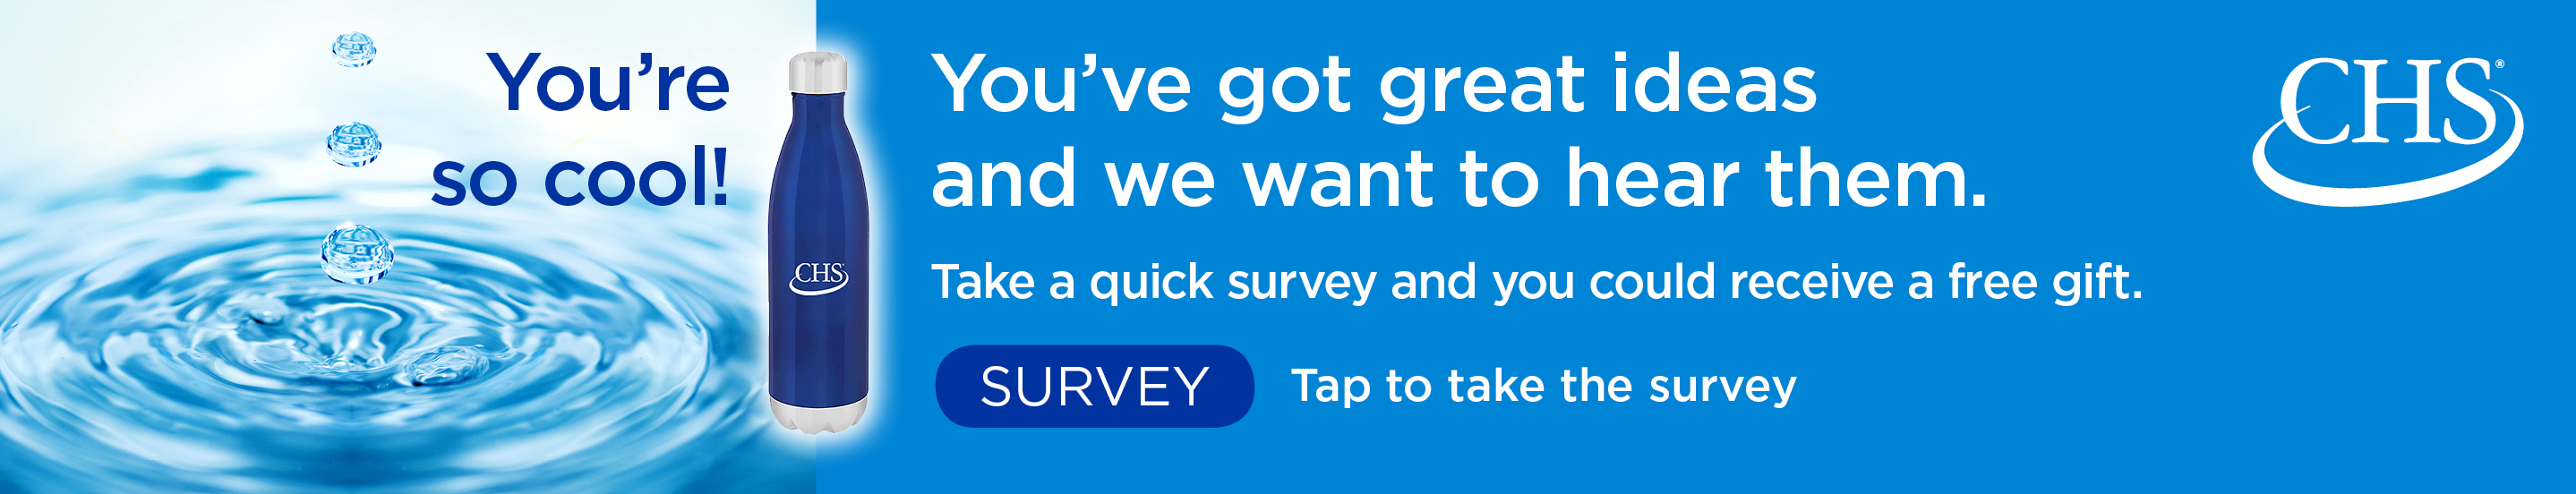 Take a quick survey and you could receive a free gift.